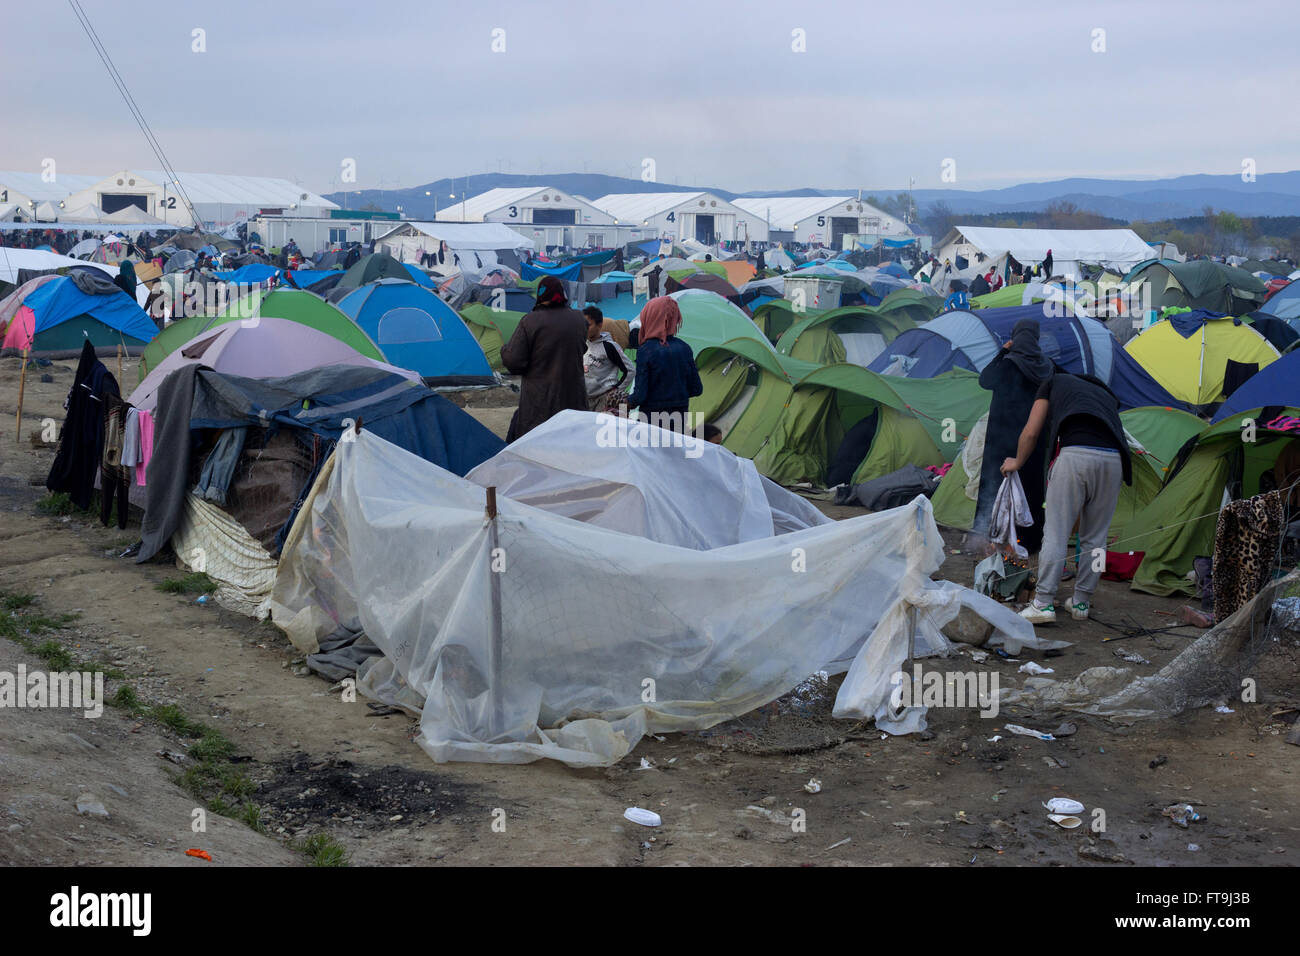 Idomeni, Greece. 26th March, 2016. After the closure of the Greek-Skopje borders, sealing the Western Balkan route, - Stock Image